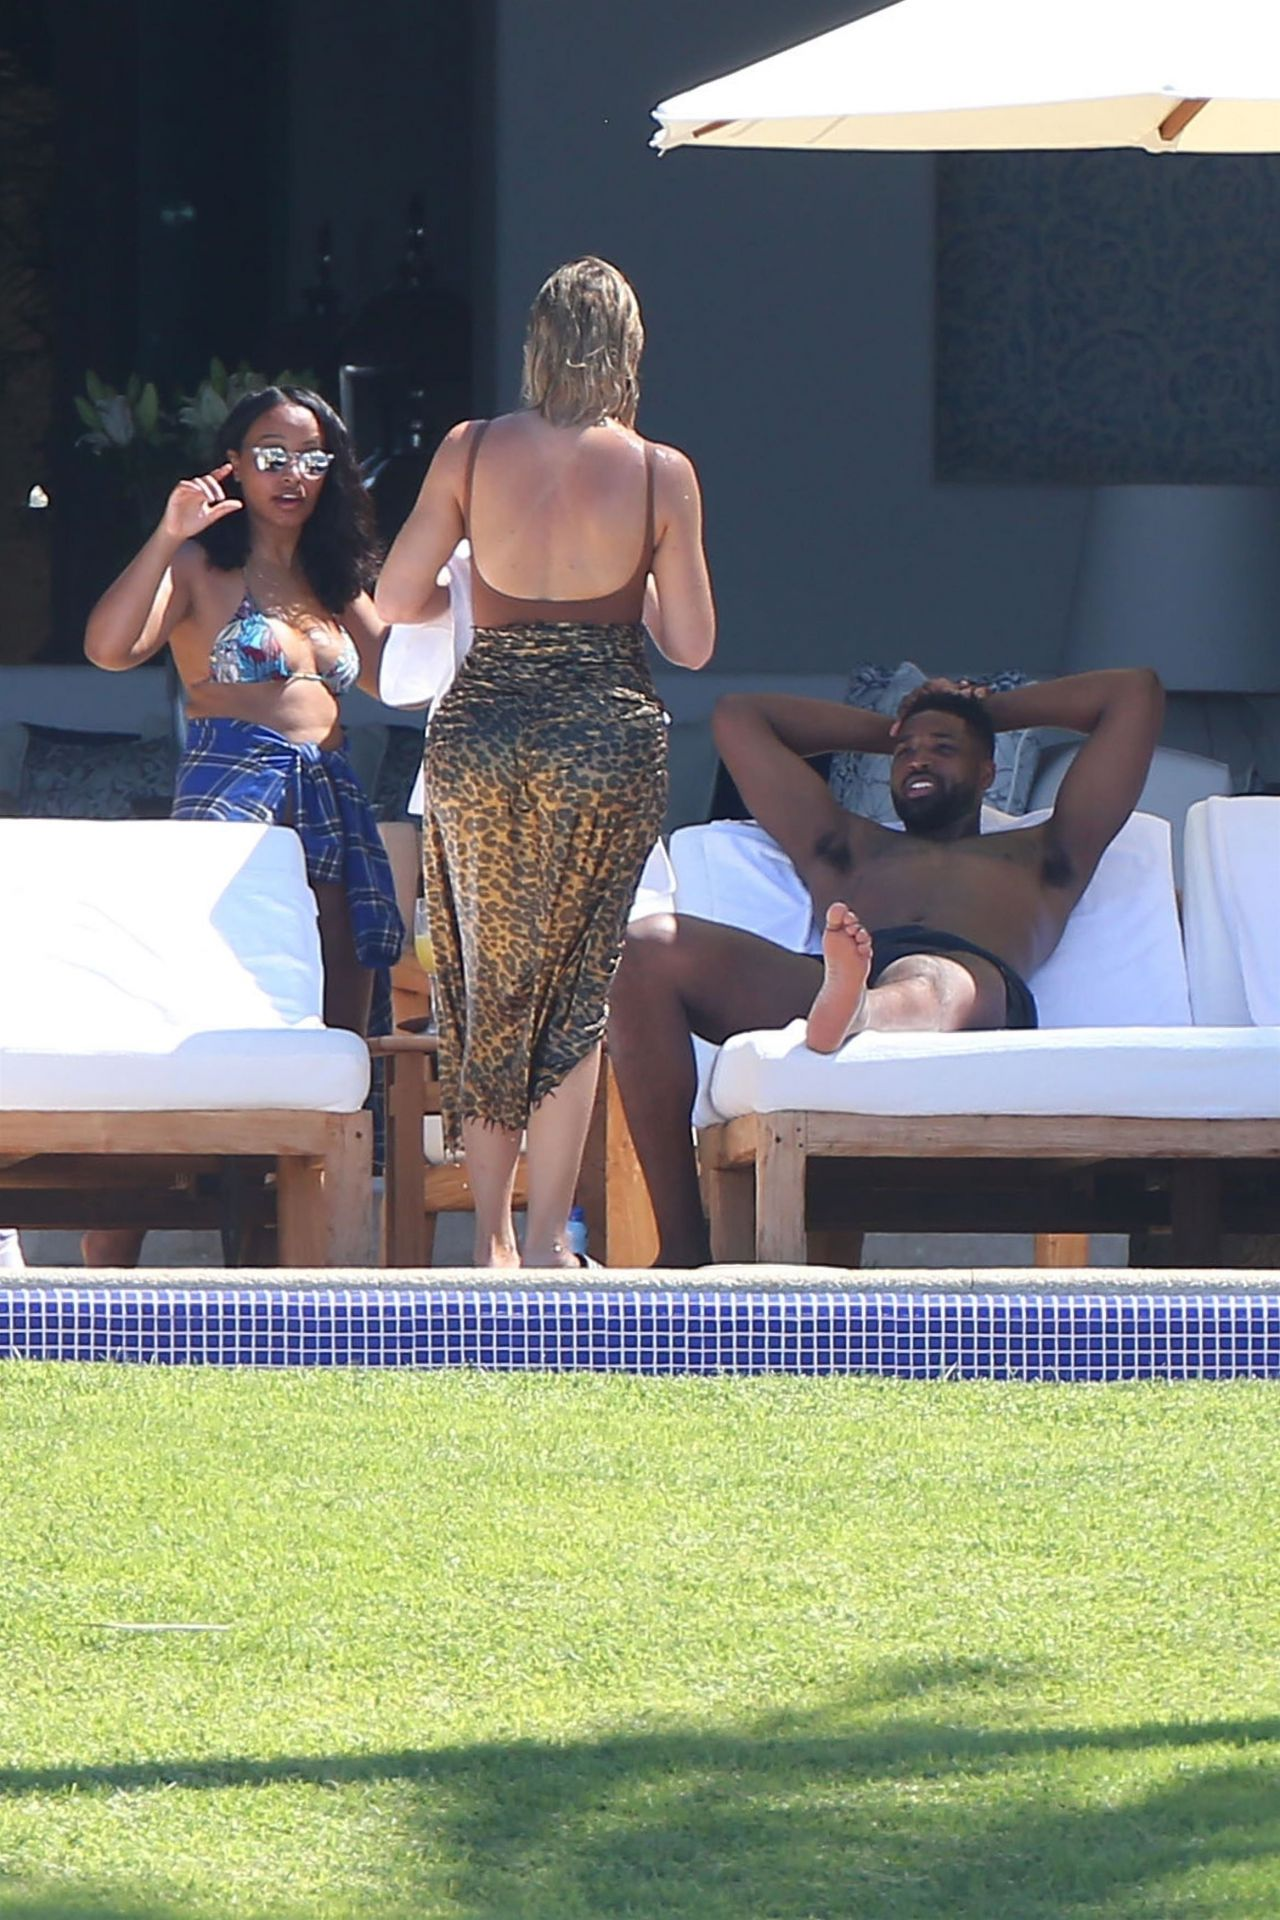 Khloe Kardashian On The Beach In Mexico 08 14 2018